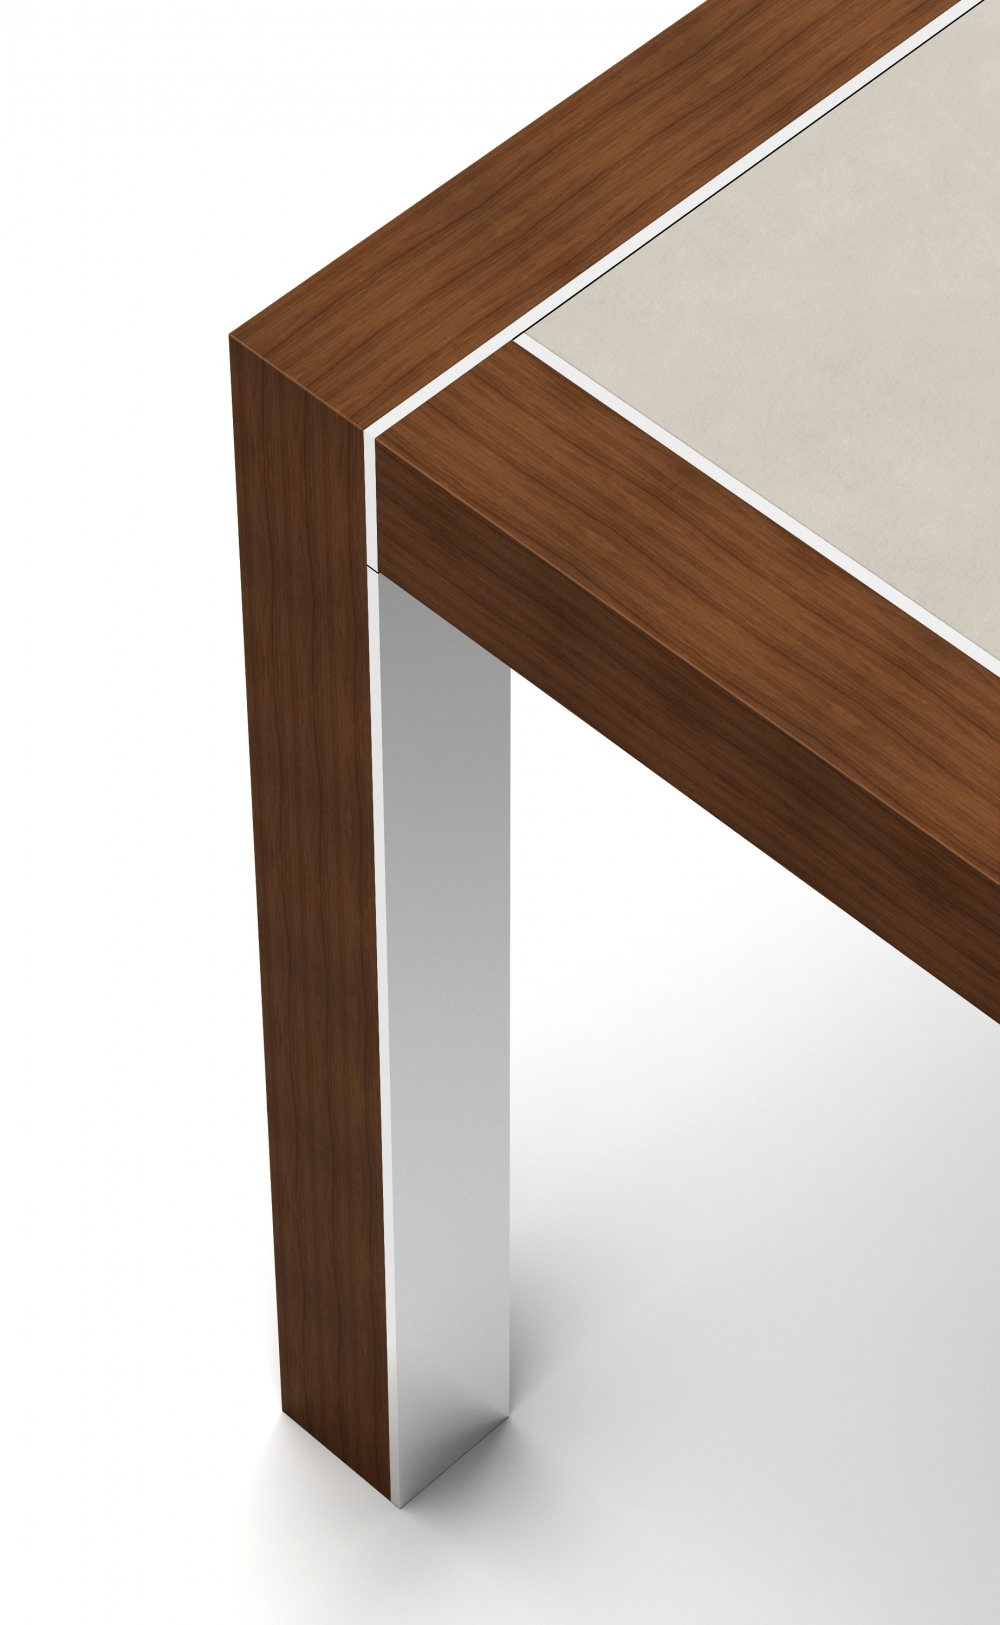 Preview of Epono | Edge Detail | G31 Otter Walnut Veneer | Polished Stainless Metal Accent | Pietra Di Osso Porcelain Table Top